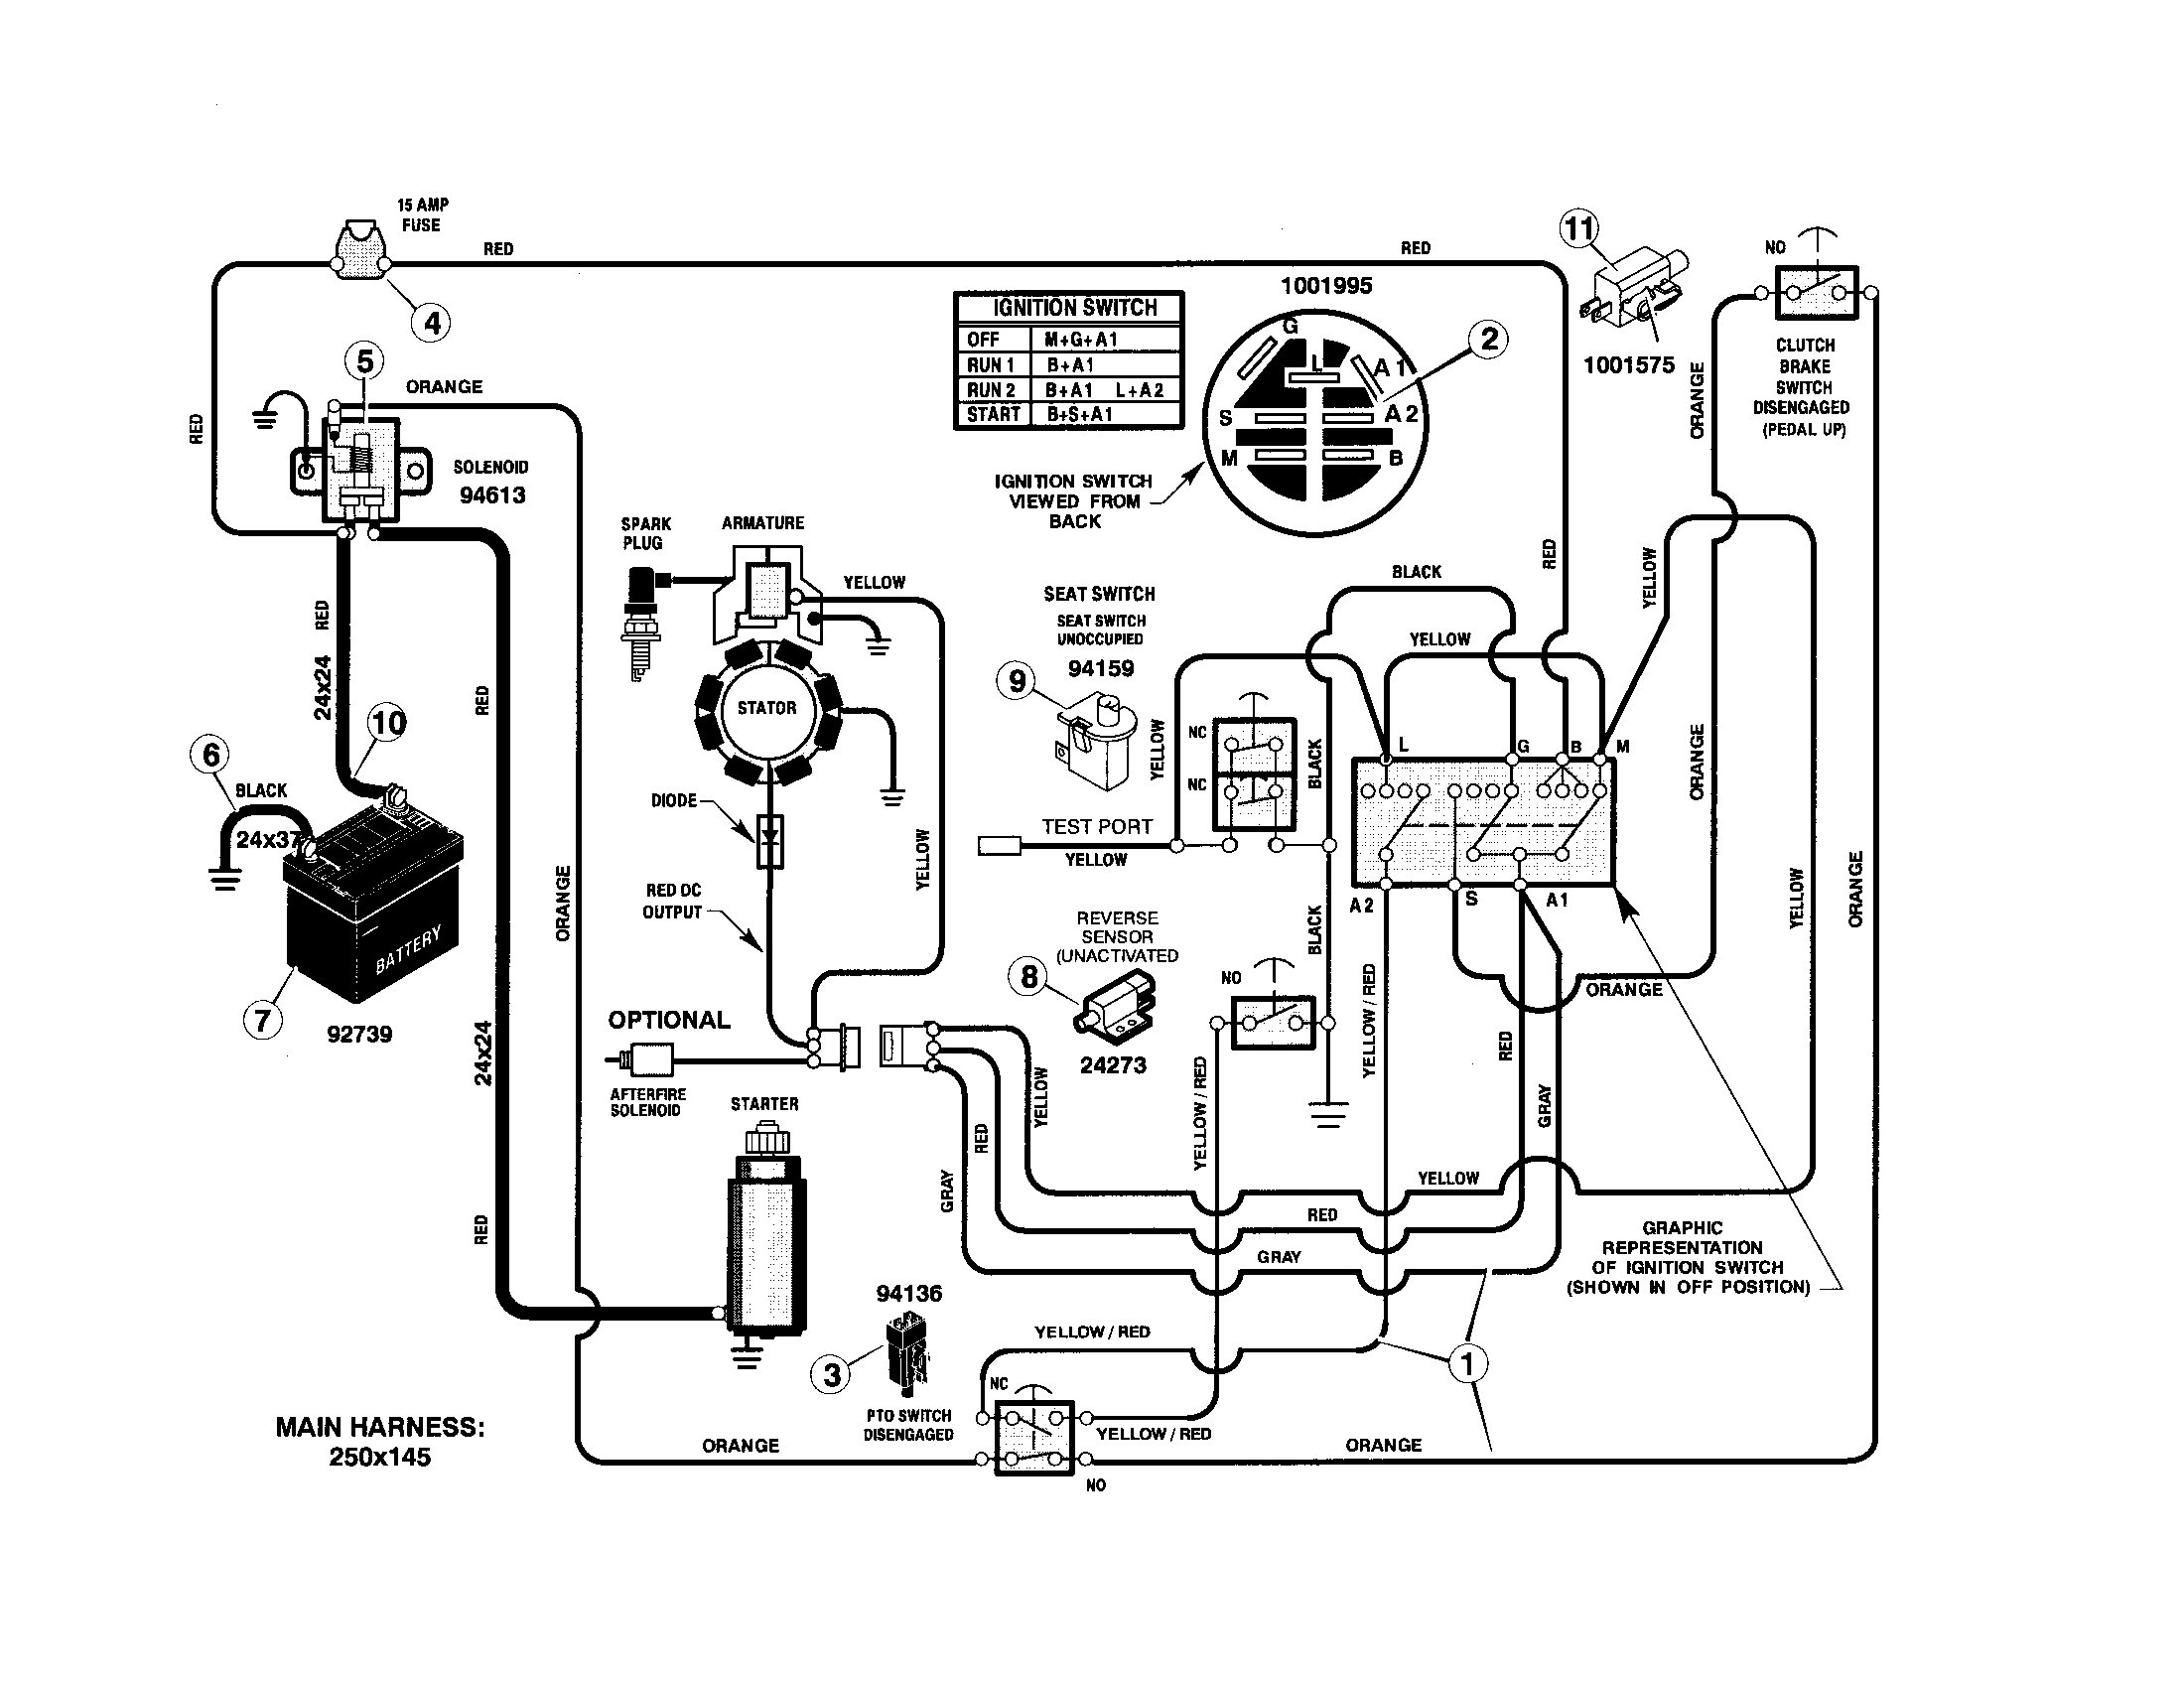 John Deere D130 Wiring Diagram Murray Riding Lawn Mower Wiring Harness Schematics Wiring Diagrams • Of John Deere D130 Wiring Diagram